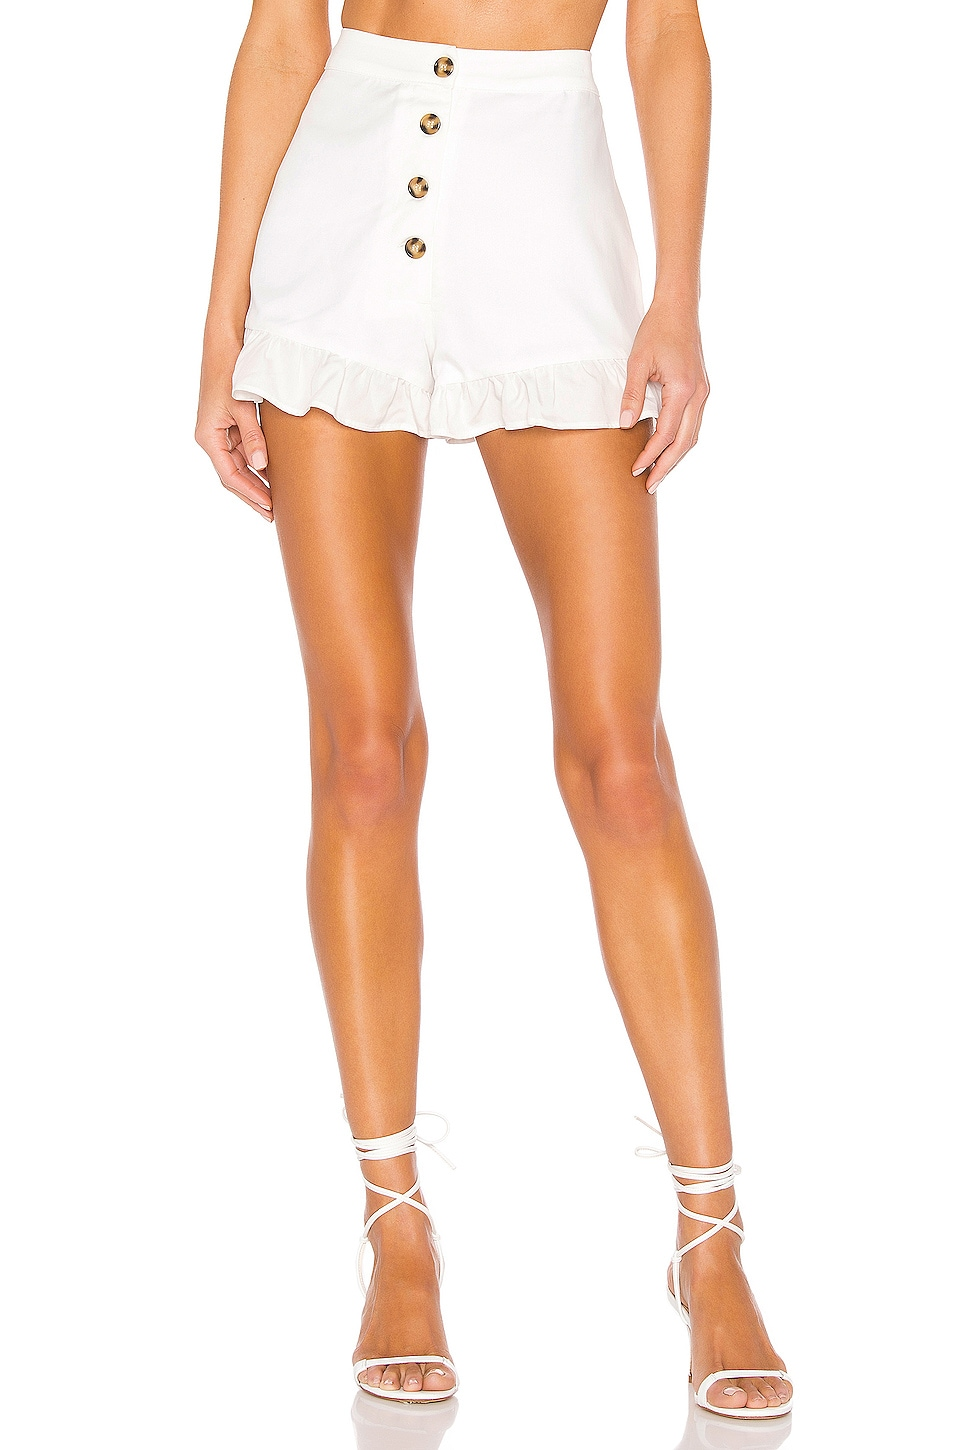 MAJORELLE Morningside Shorts in White